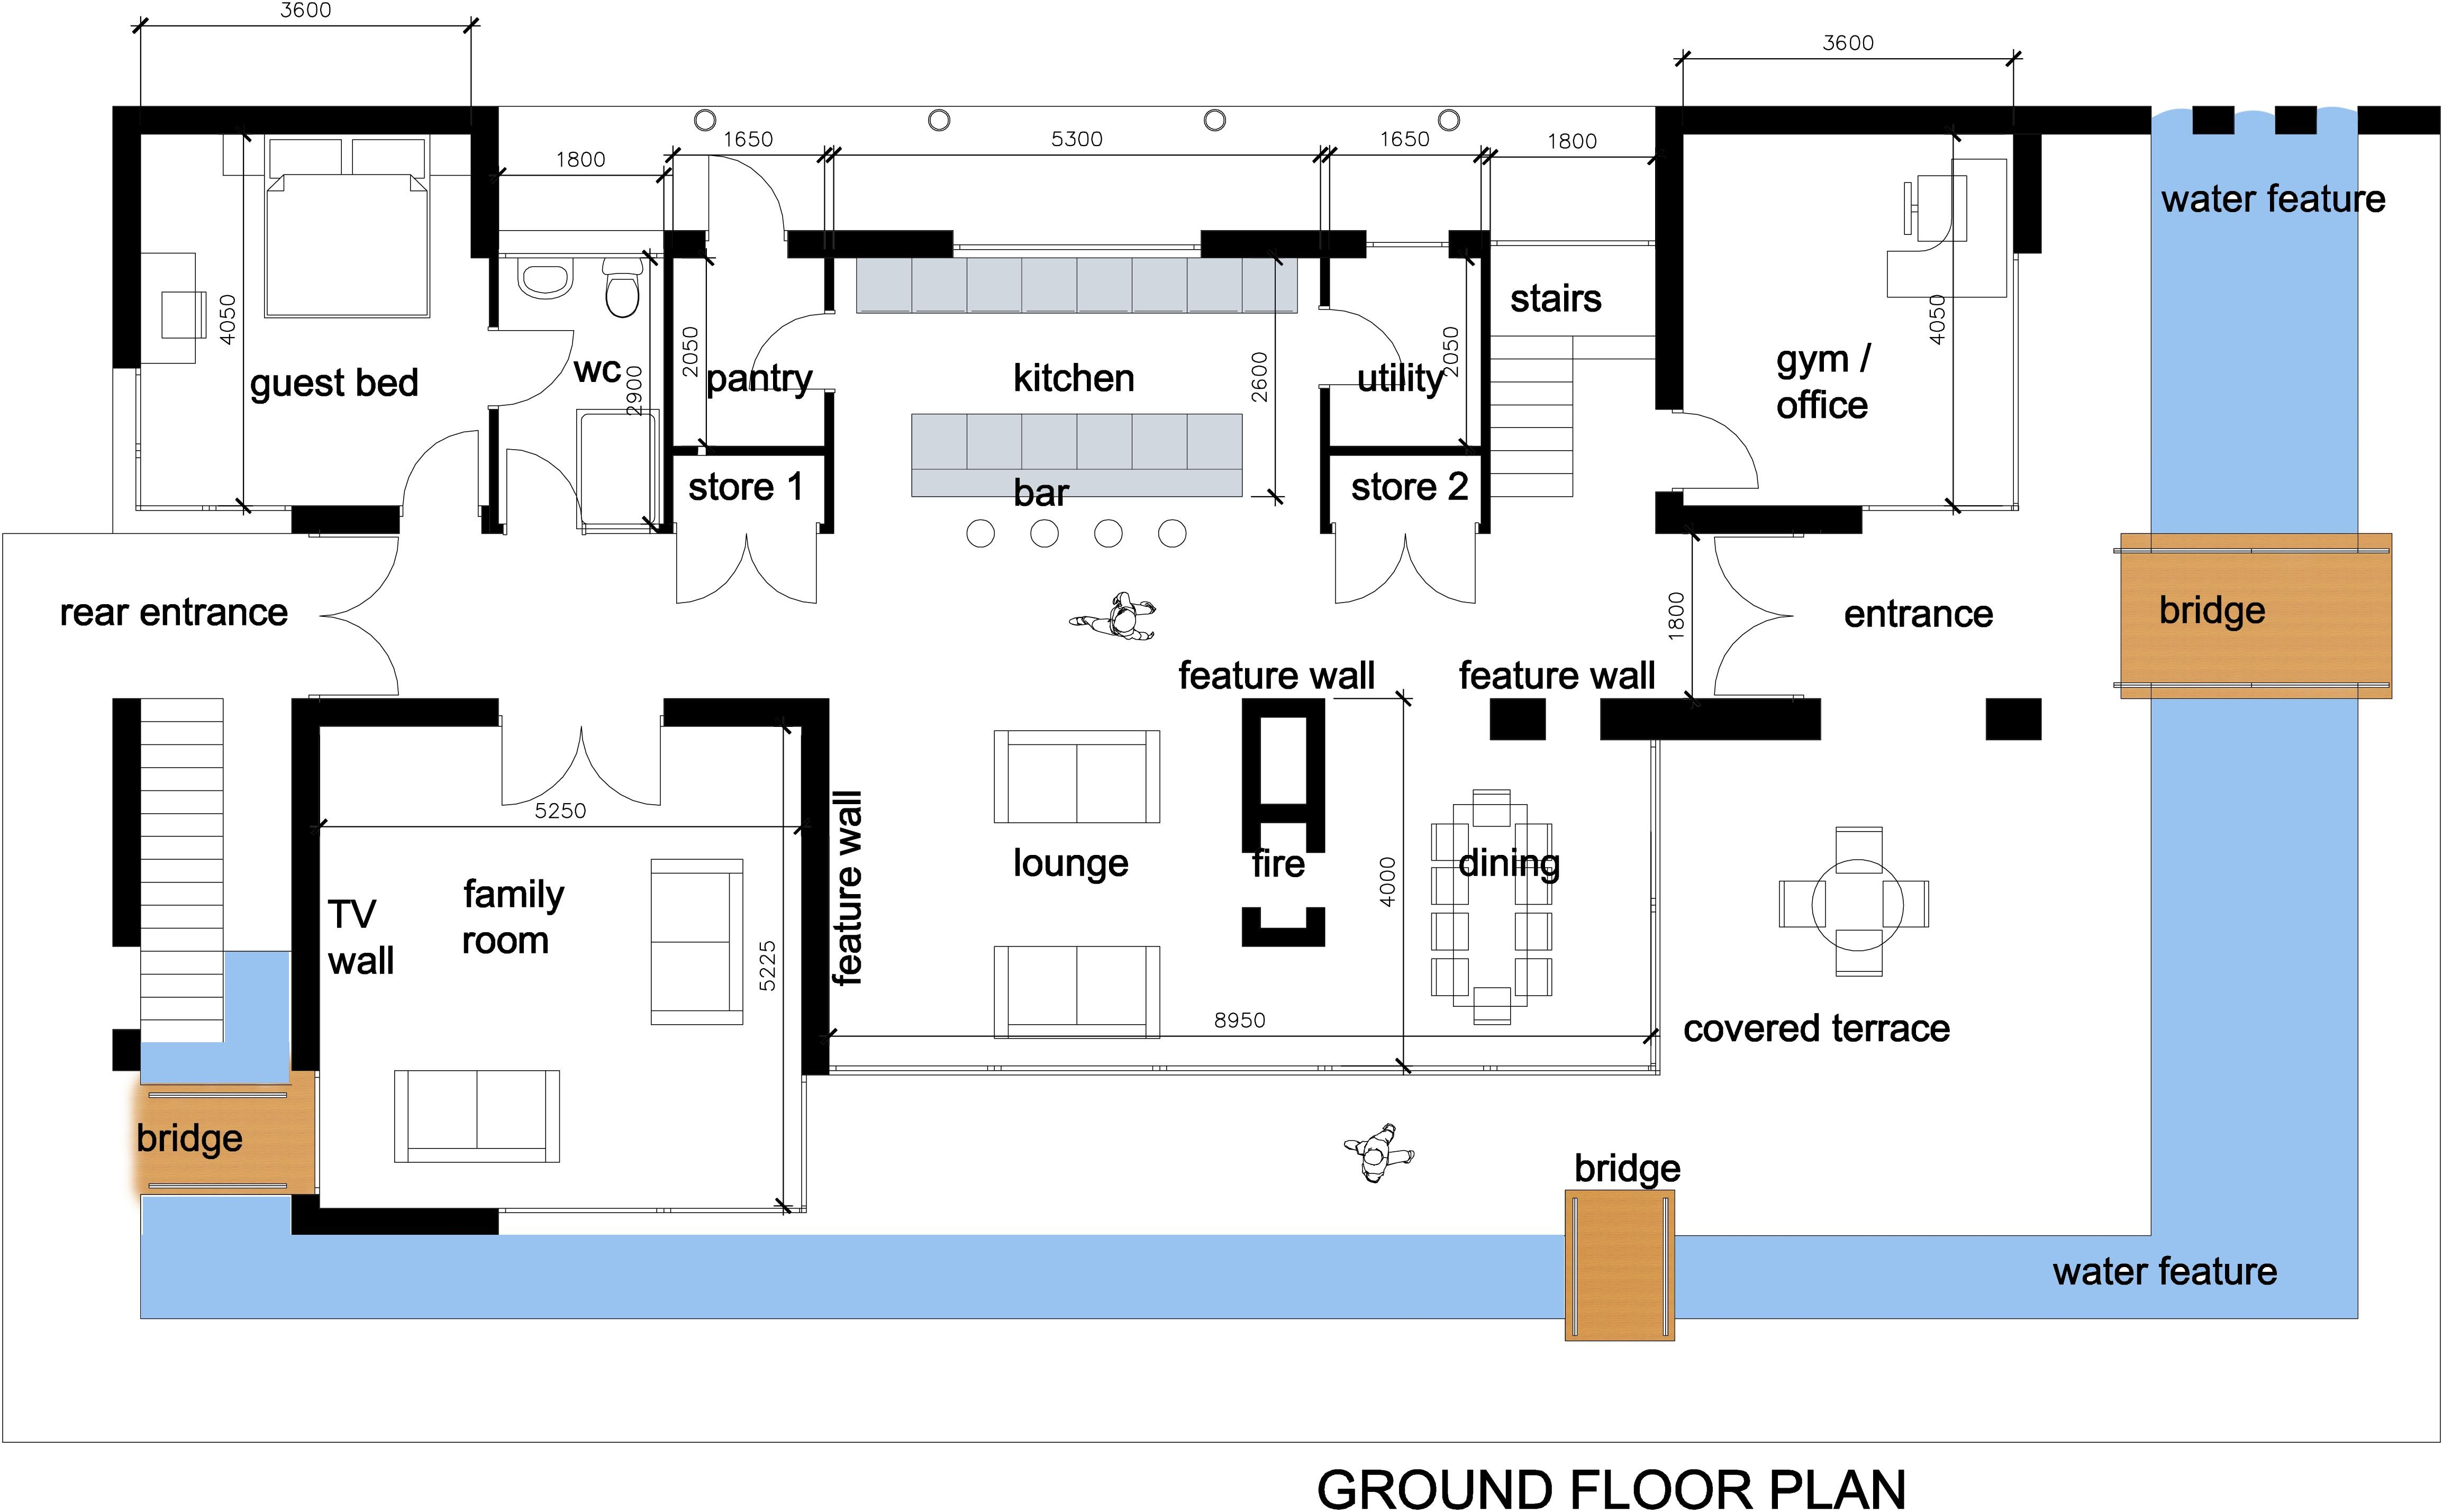 Pleasant House Interior Design Modern House Plan Images Love This Floor Largest Home Design Picture Inspirations Pitcheantrous